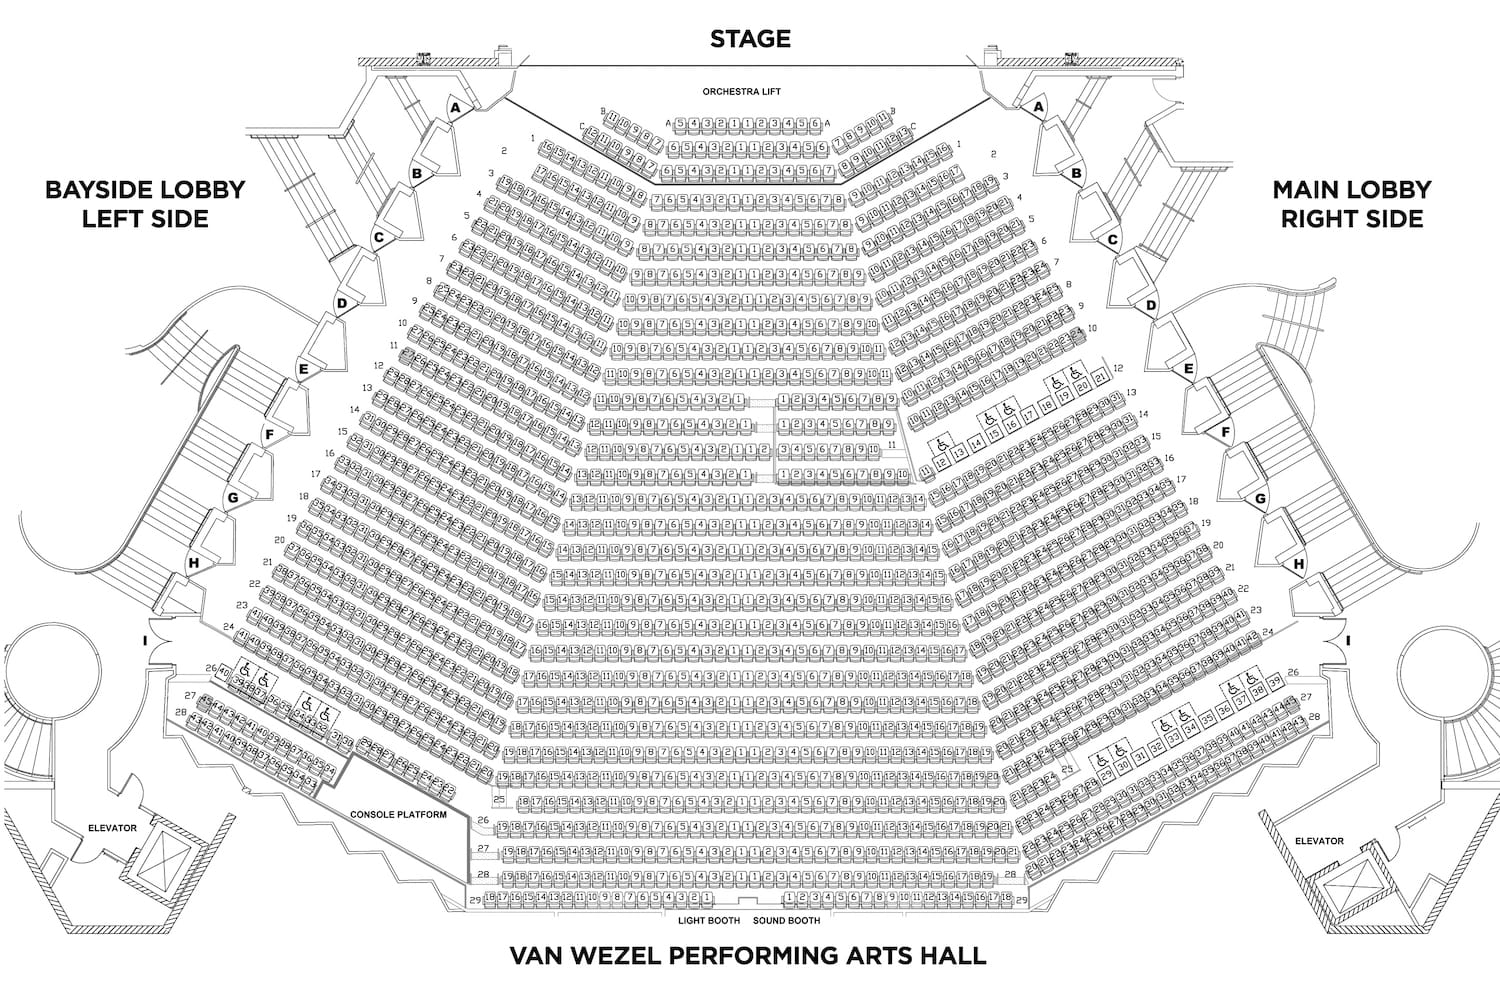 Seating Chart  Van Wezel Performing Arts Hall  Sarasota Fl